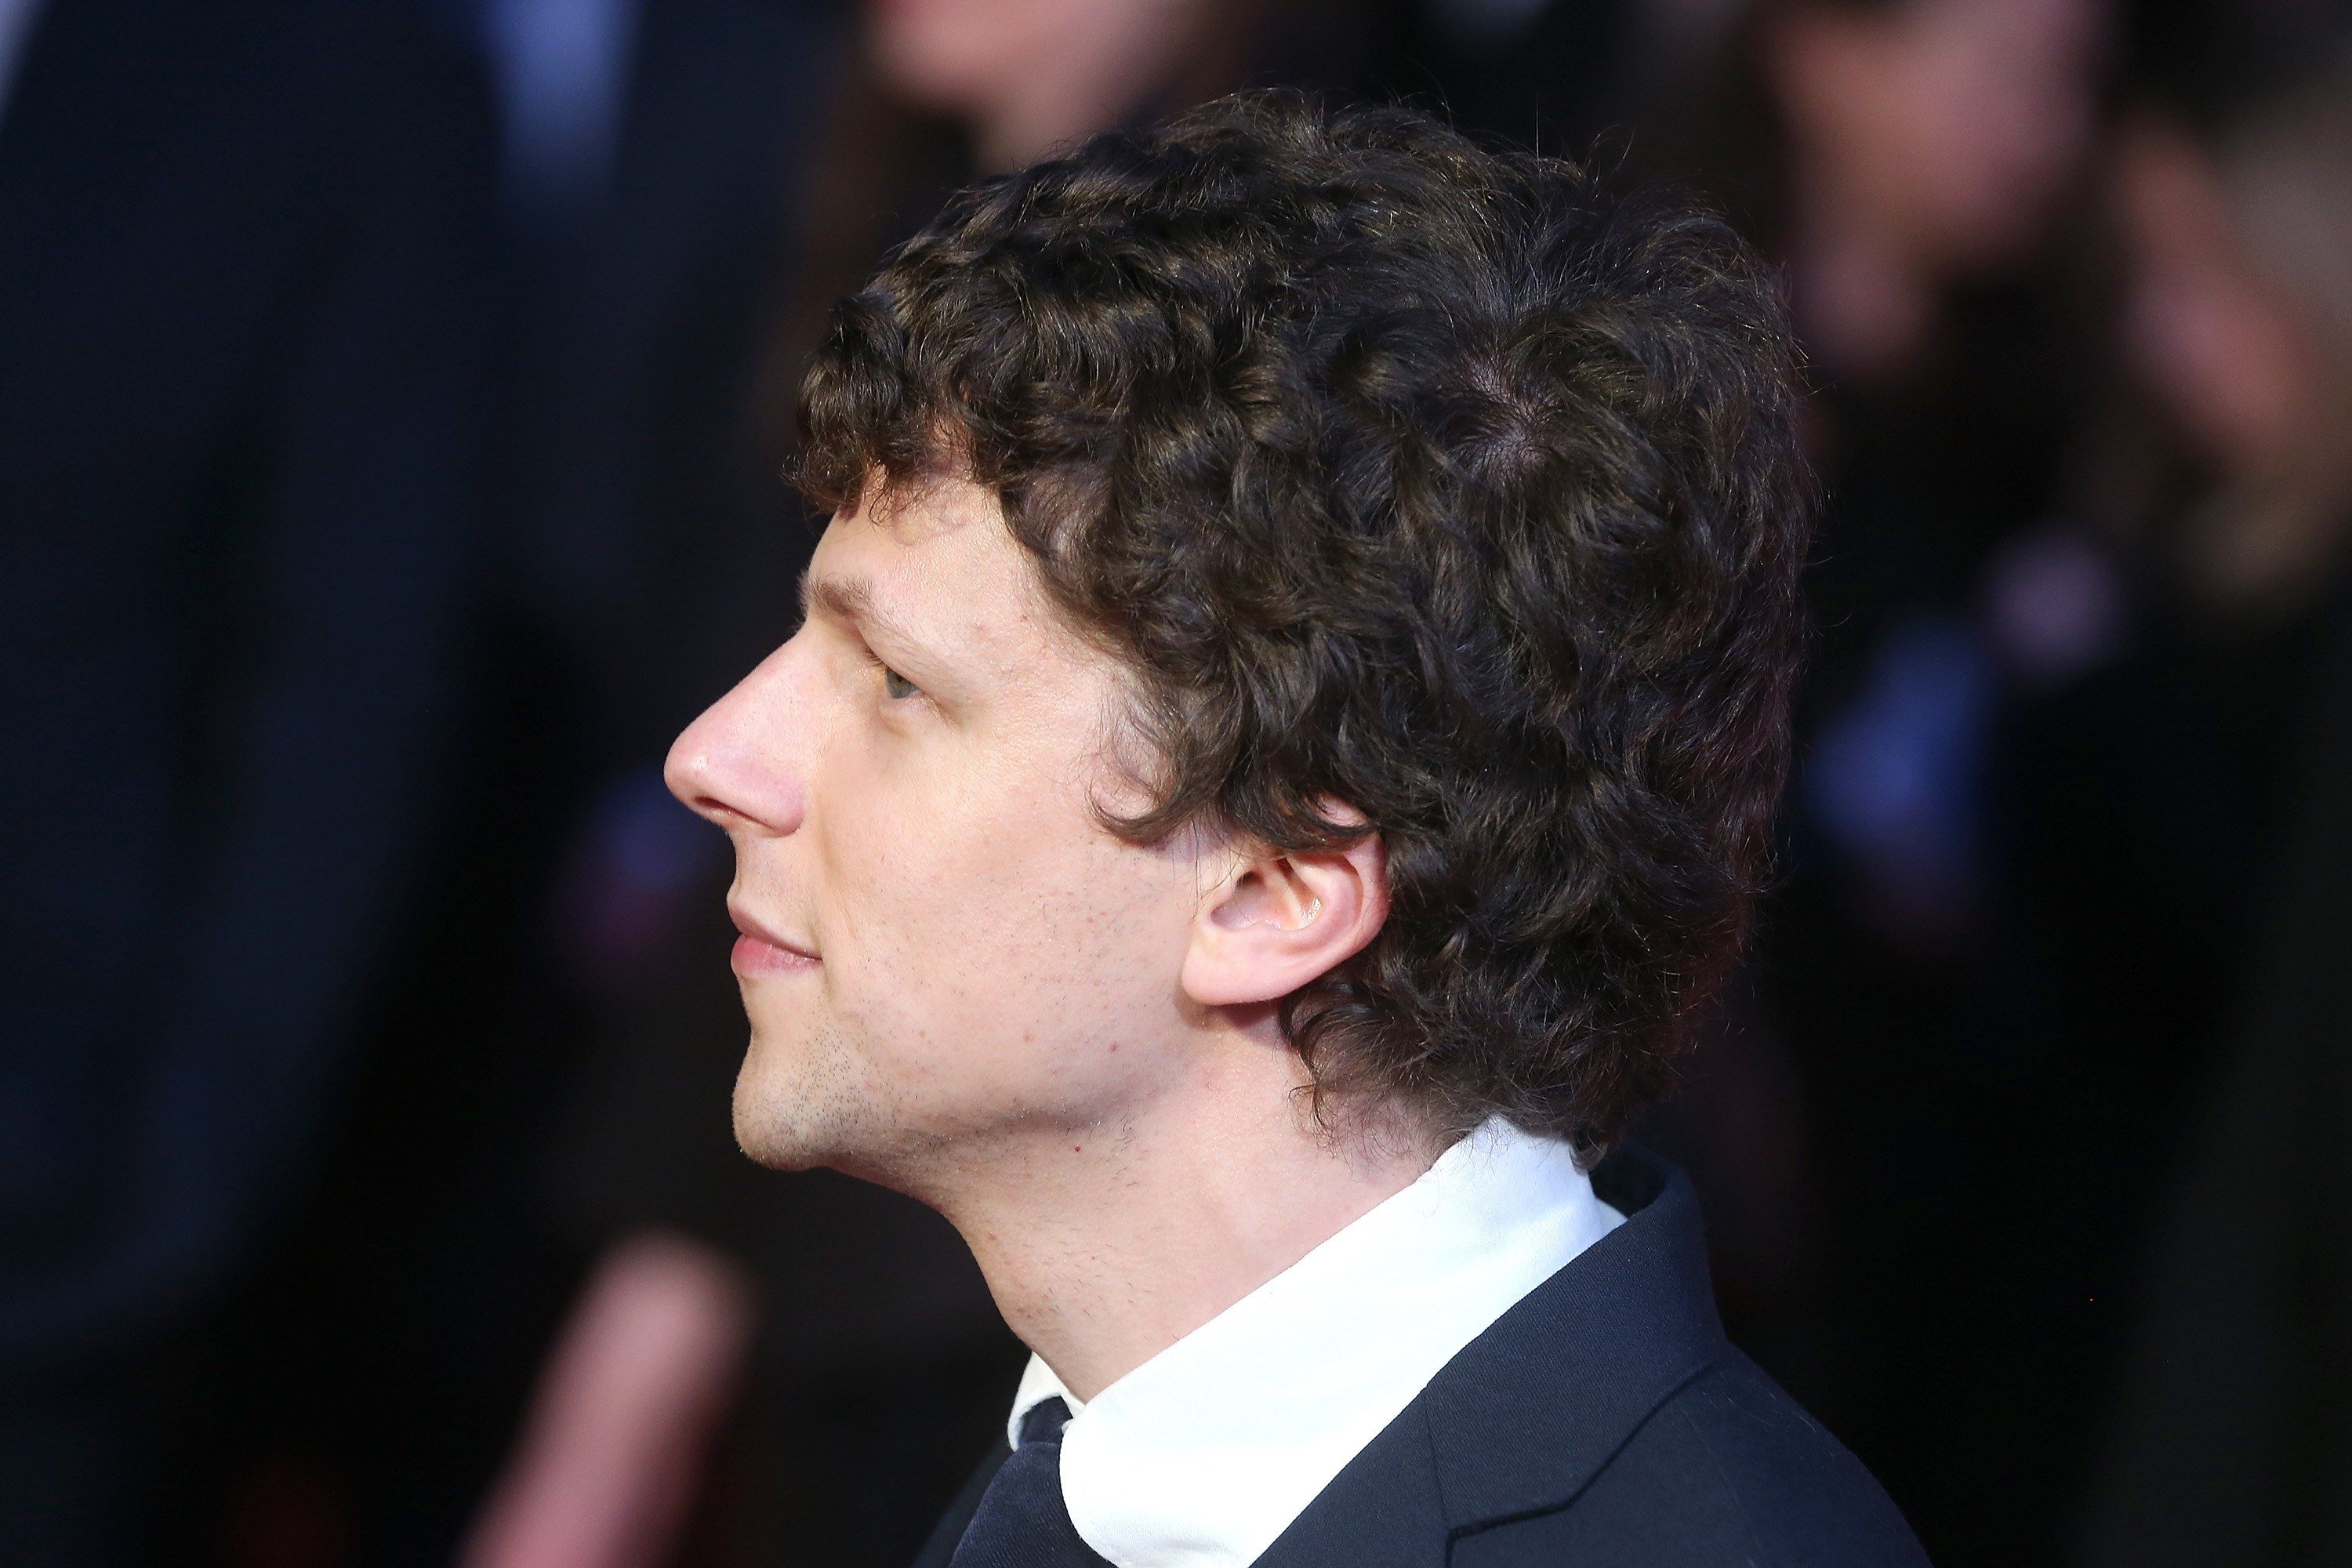 LONDON, ENGLAND - MARCH 22:  Jesse Eisenberg attends the European Premiere of 'Batman V Superman: Dawn Of Justice' at Odeon L